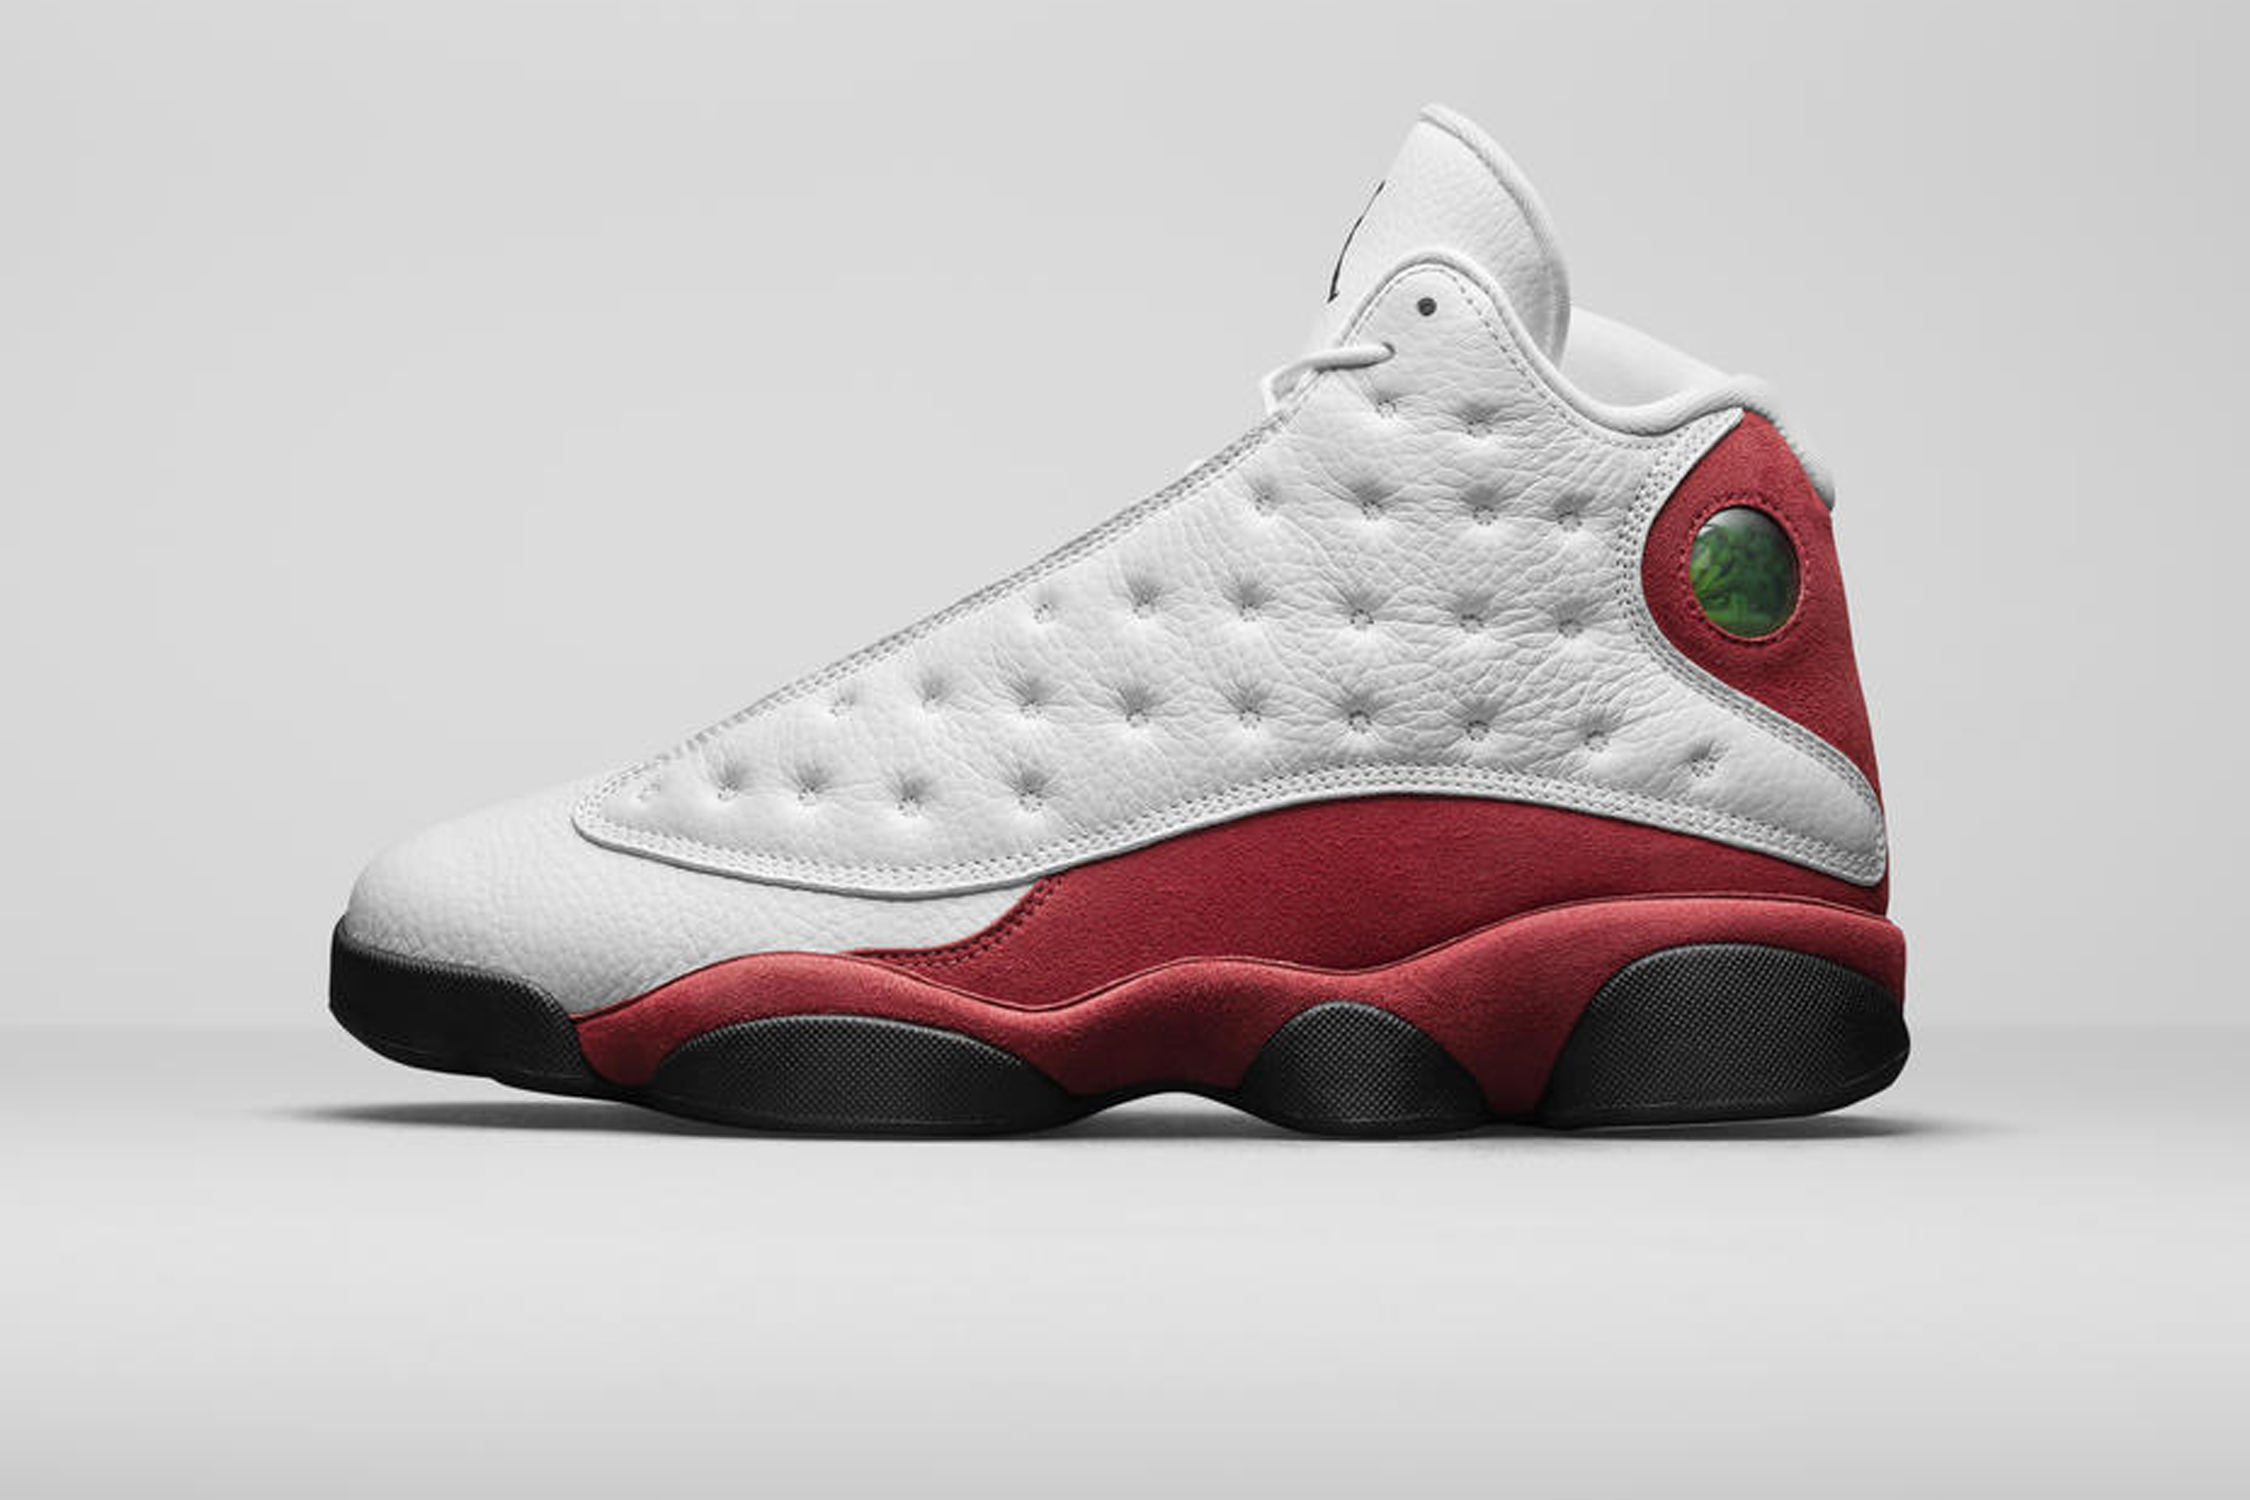 The collection of PE colorways pay homage to the Air Jordan XIII OG and the  iconic